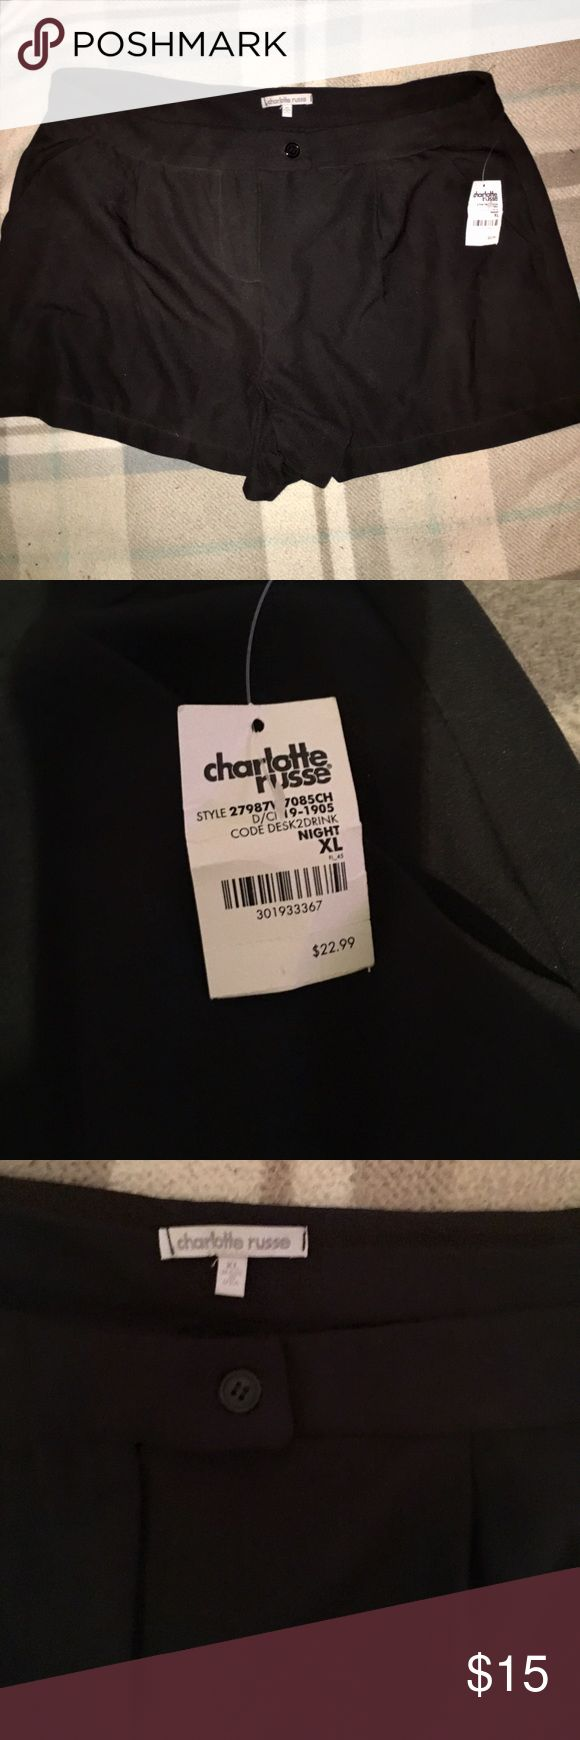 NWT Charlotte Russe dressy shorts Dressy black shorts from Charlotte Russe. Can make any outfit look classy and dressy! Great for a job/work shorts or a night out! Comes with a free gift with purchase!  Brand new with tags never worn! Charlotte Russe Shorts